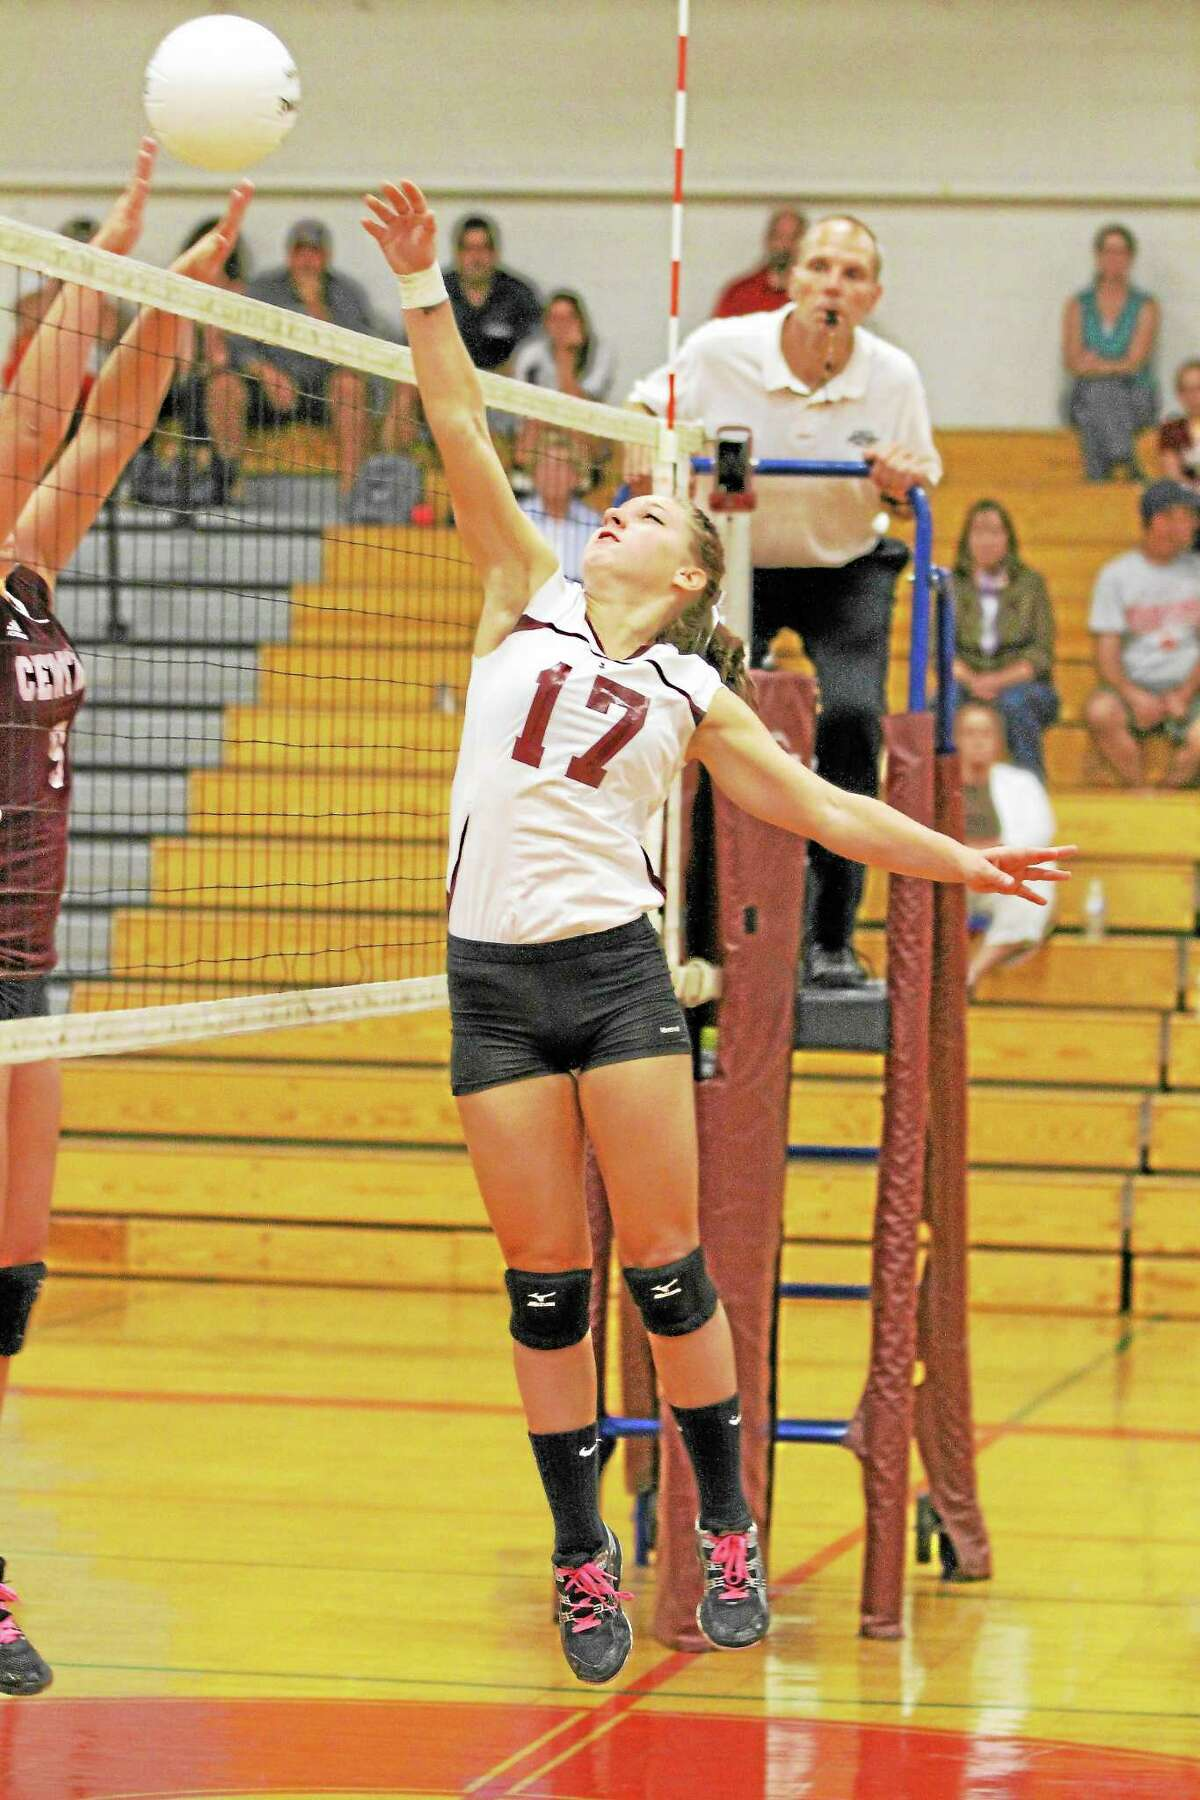 Torrington's Kiley Rosengrant was an important part of the Red Raiders success this season.